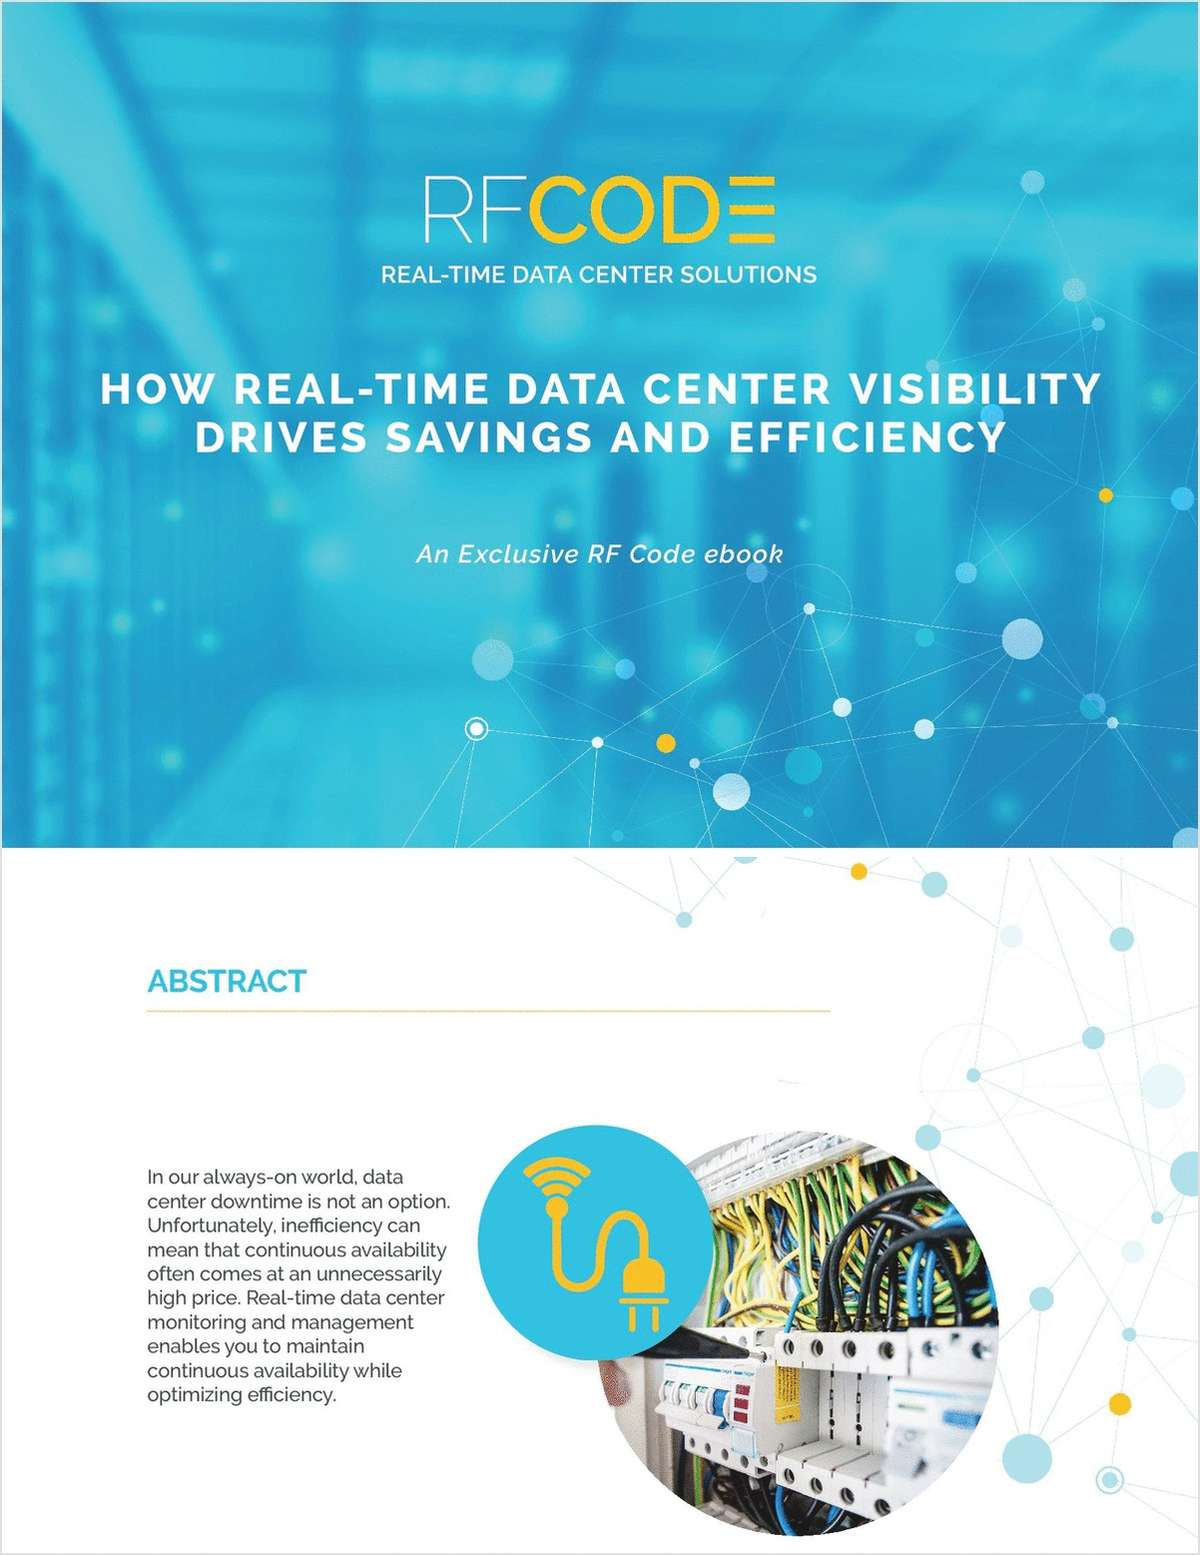 How Real-Time Data Center Visibility Drives Savings and Efficiency